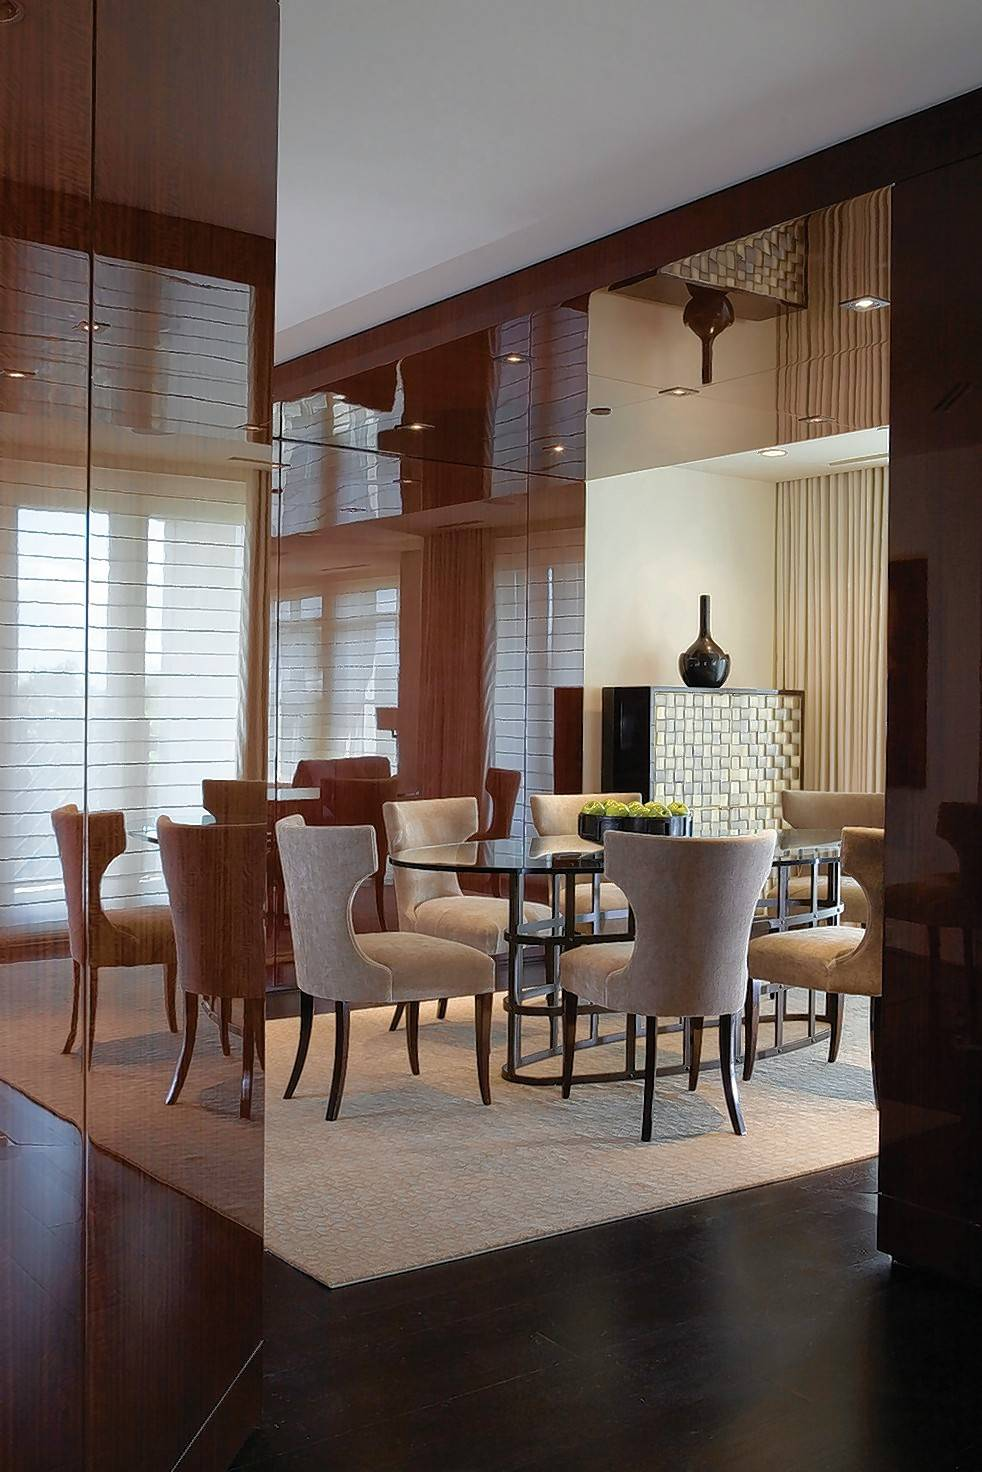 A Washington, D.C., condo dining room designed by Thomas Pheasant features dark stained mahogany panels on walls and ceilings that contrast with bronze and steel finishes on the furnishings.